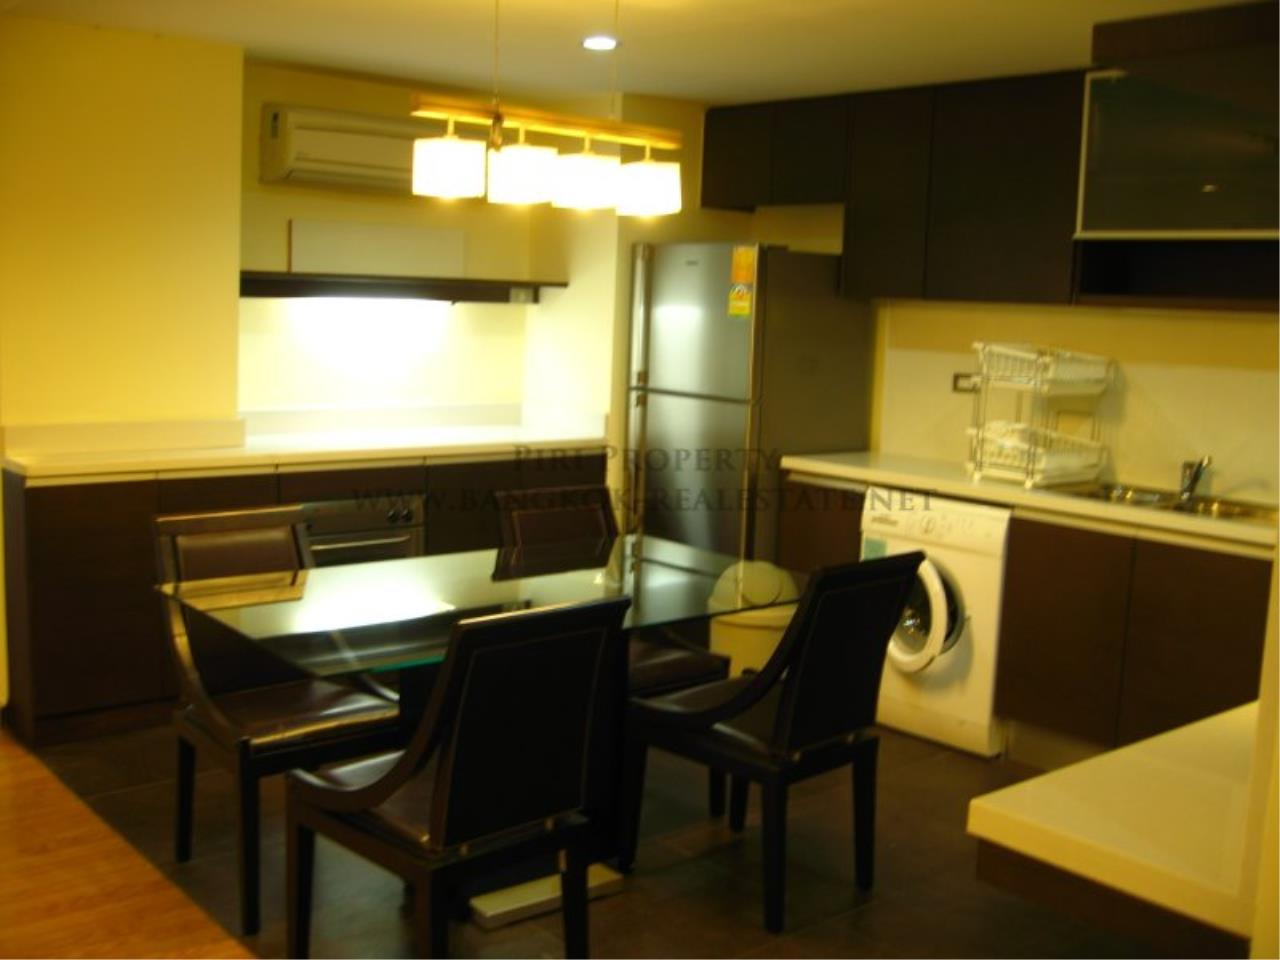 Piri Property Agency's Two Bedroom Condo with direct pool access - 59 Heritage in Ekkamai for Sale 3